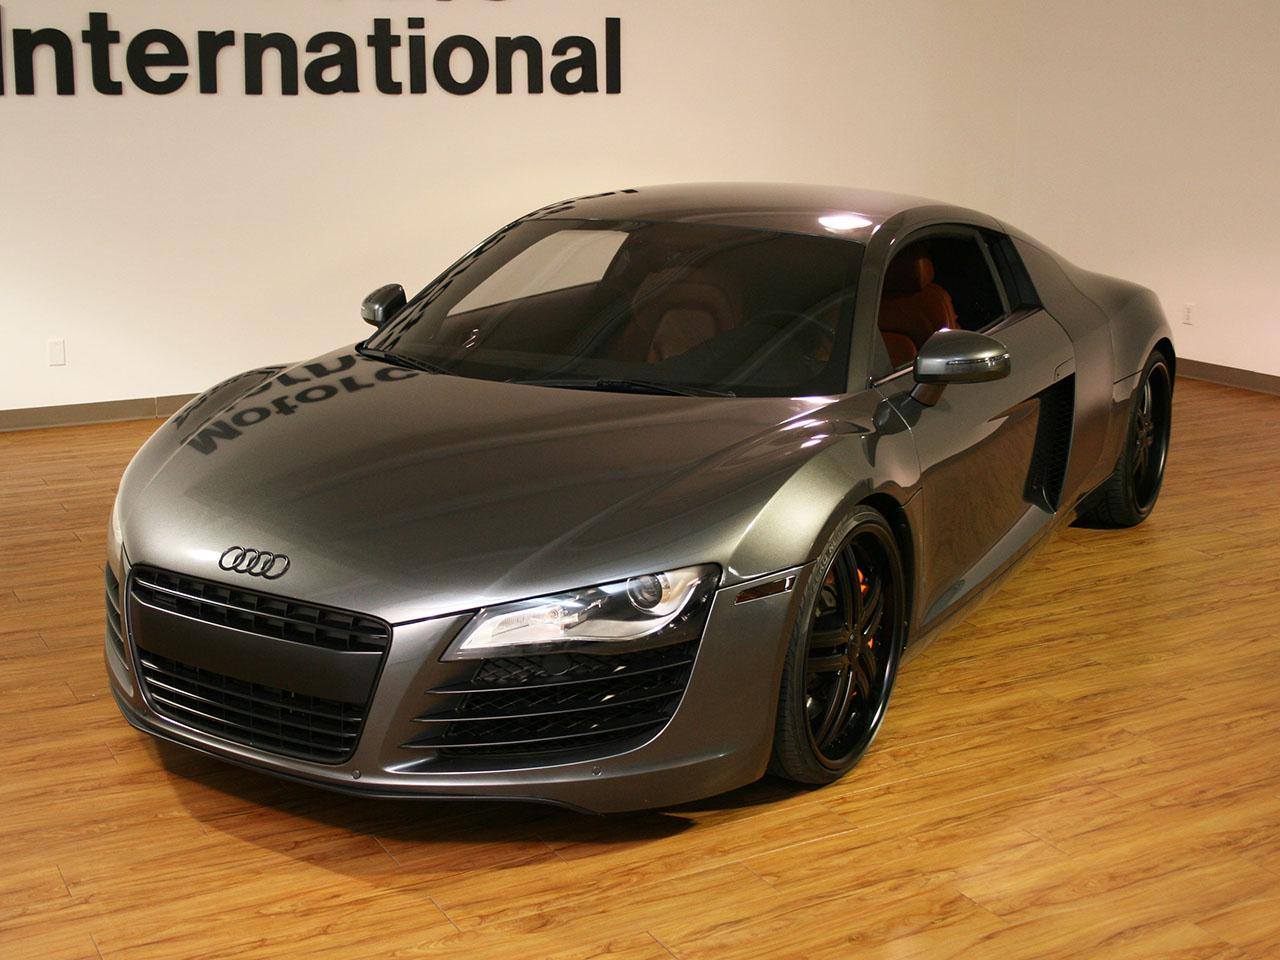 audi r8 1 4 mile 2010 audi r8 5 2 v10 eurocharged tuned 1 4 mile trap 2010 audi r8 coupe 1 4. Black Bedroom Furniture Sets. Home Design Ideas